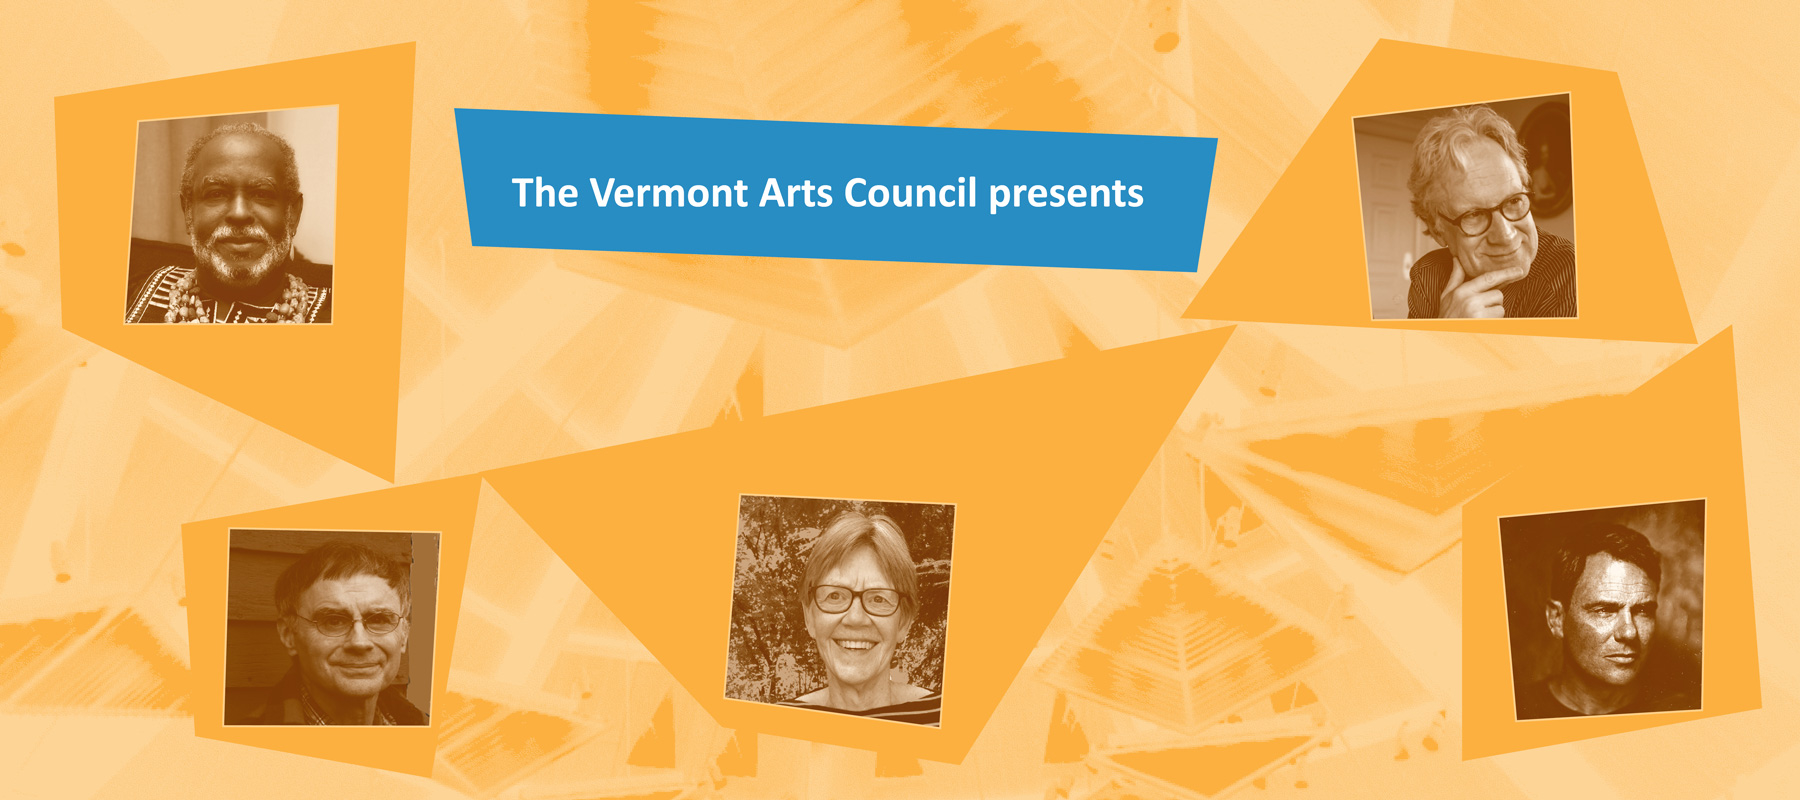 The Vermont Arts Council presents